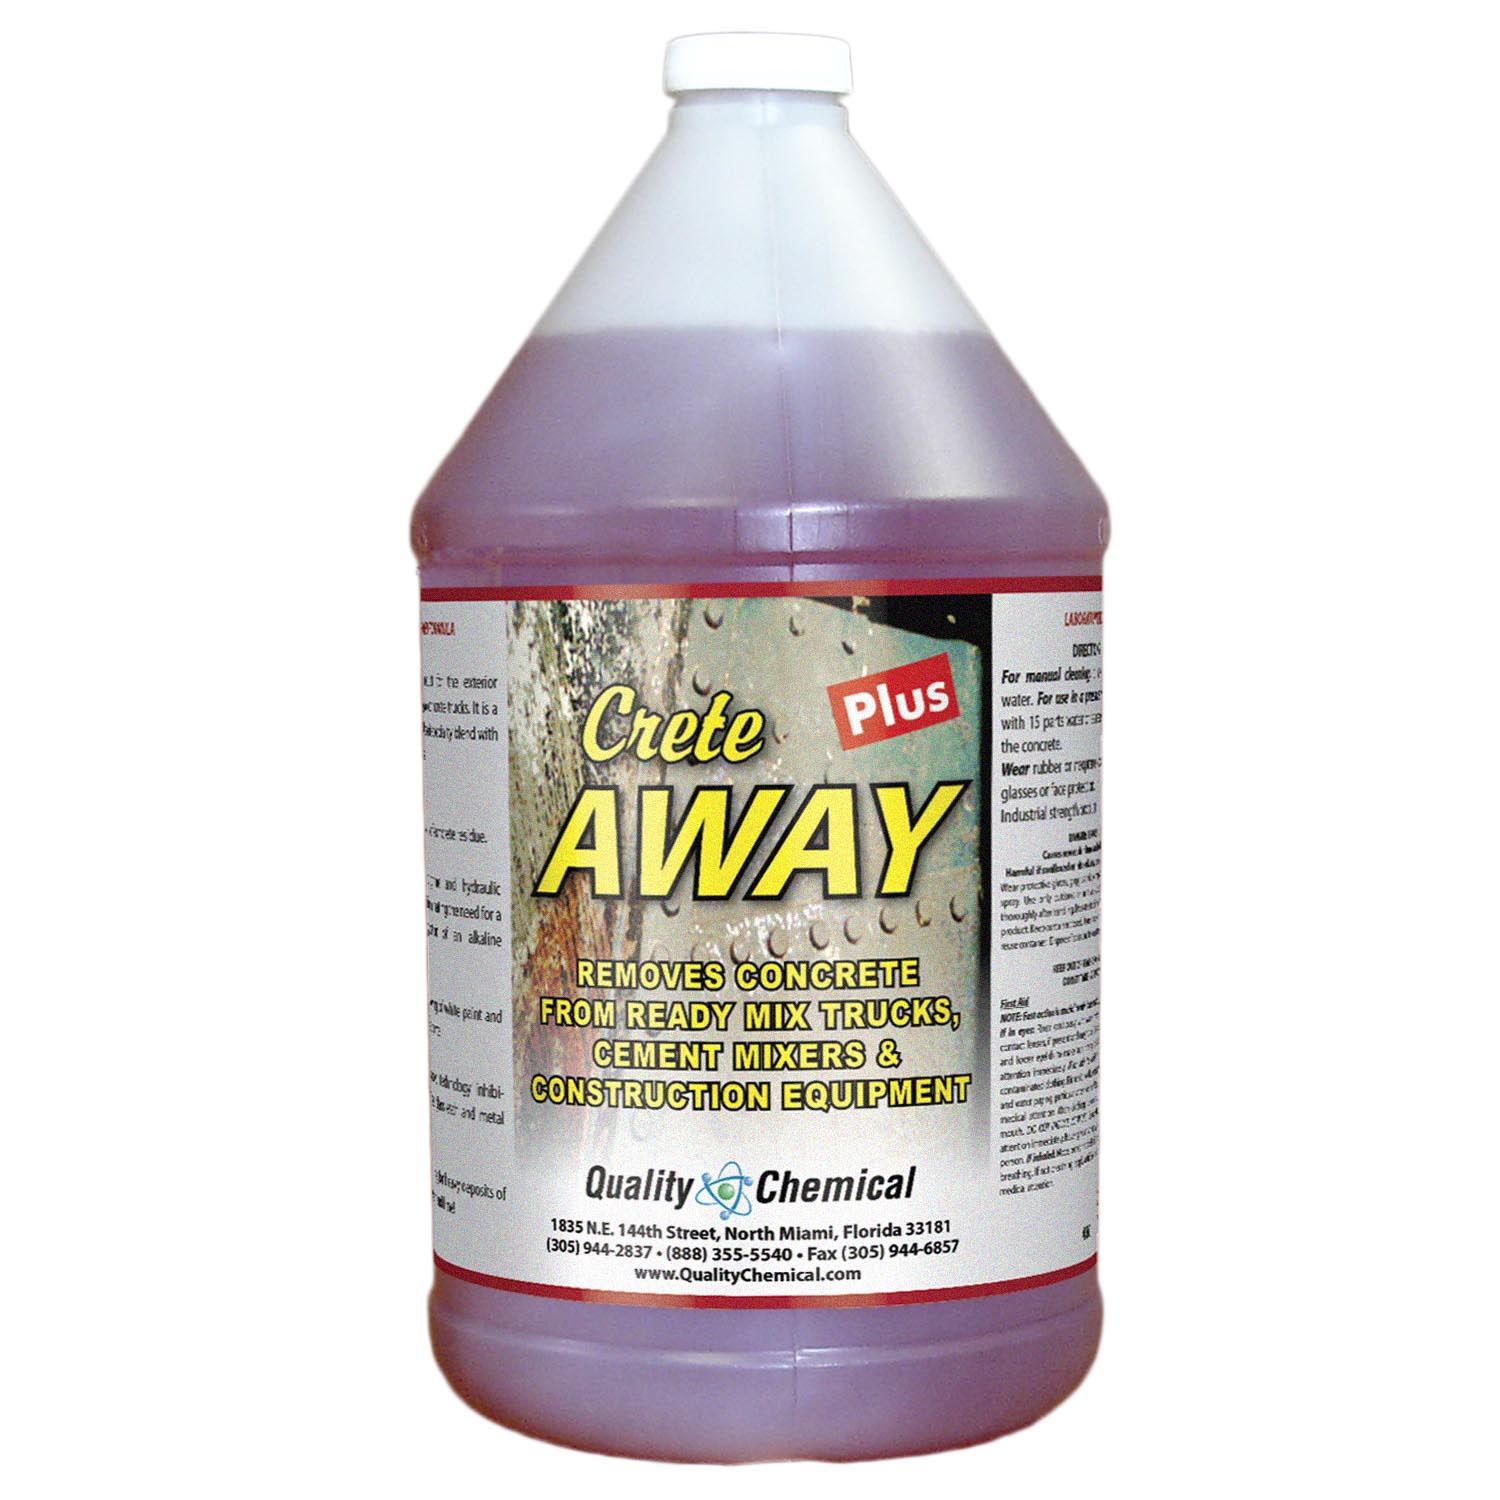 Crete Away Concrete Remover Plus